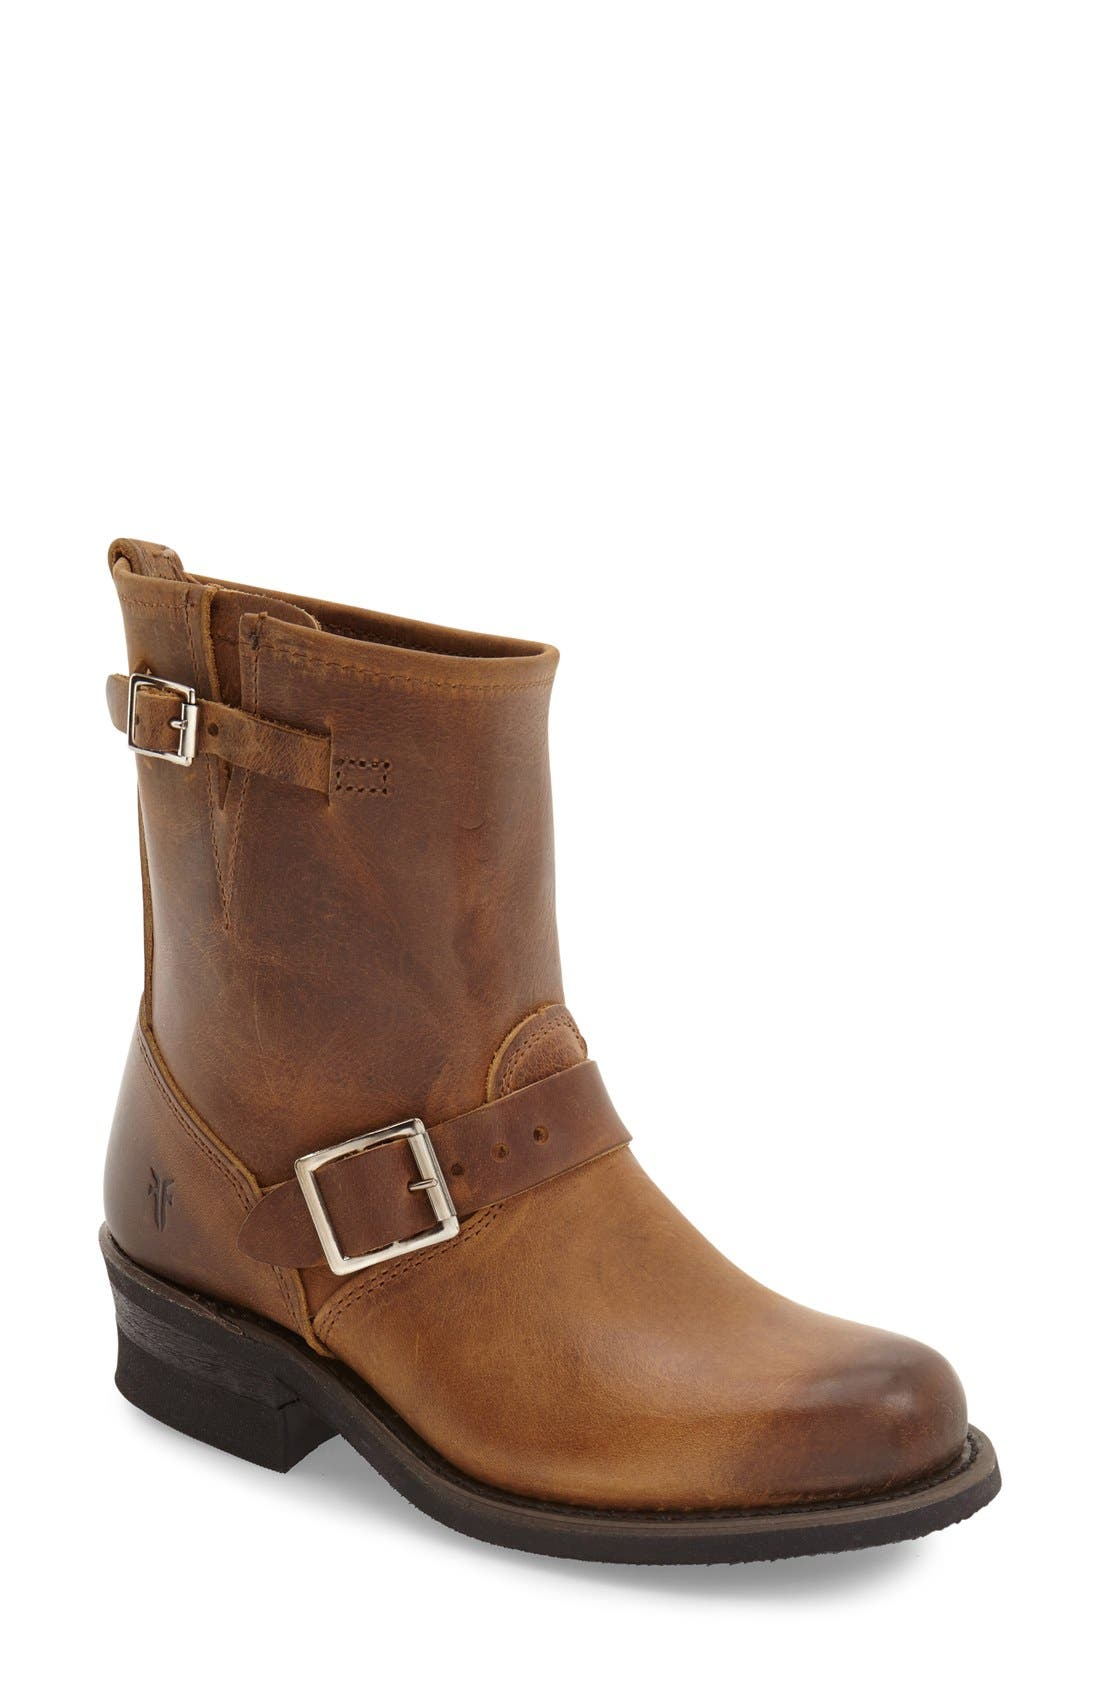 Main Image - Frye 'Engineer 8R' Leather Boot (Women)